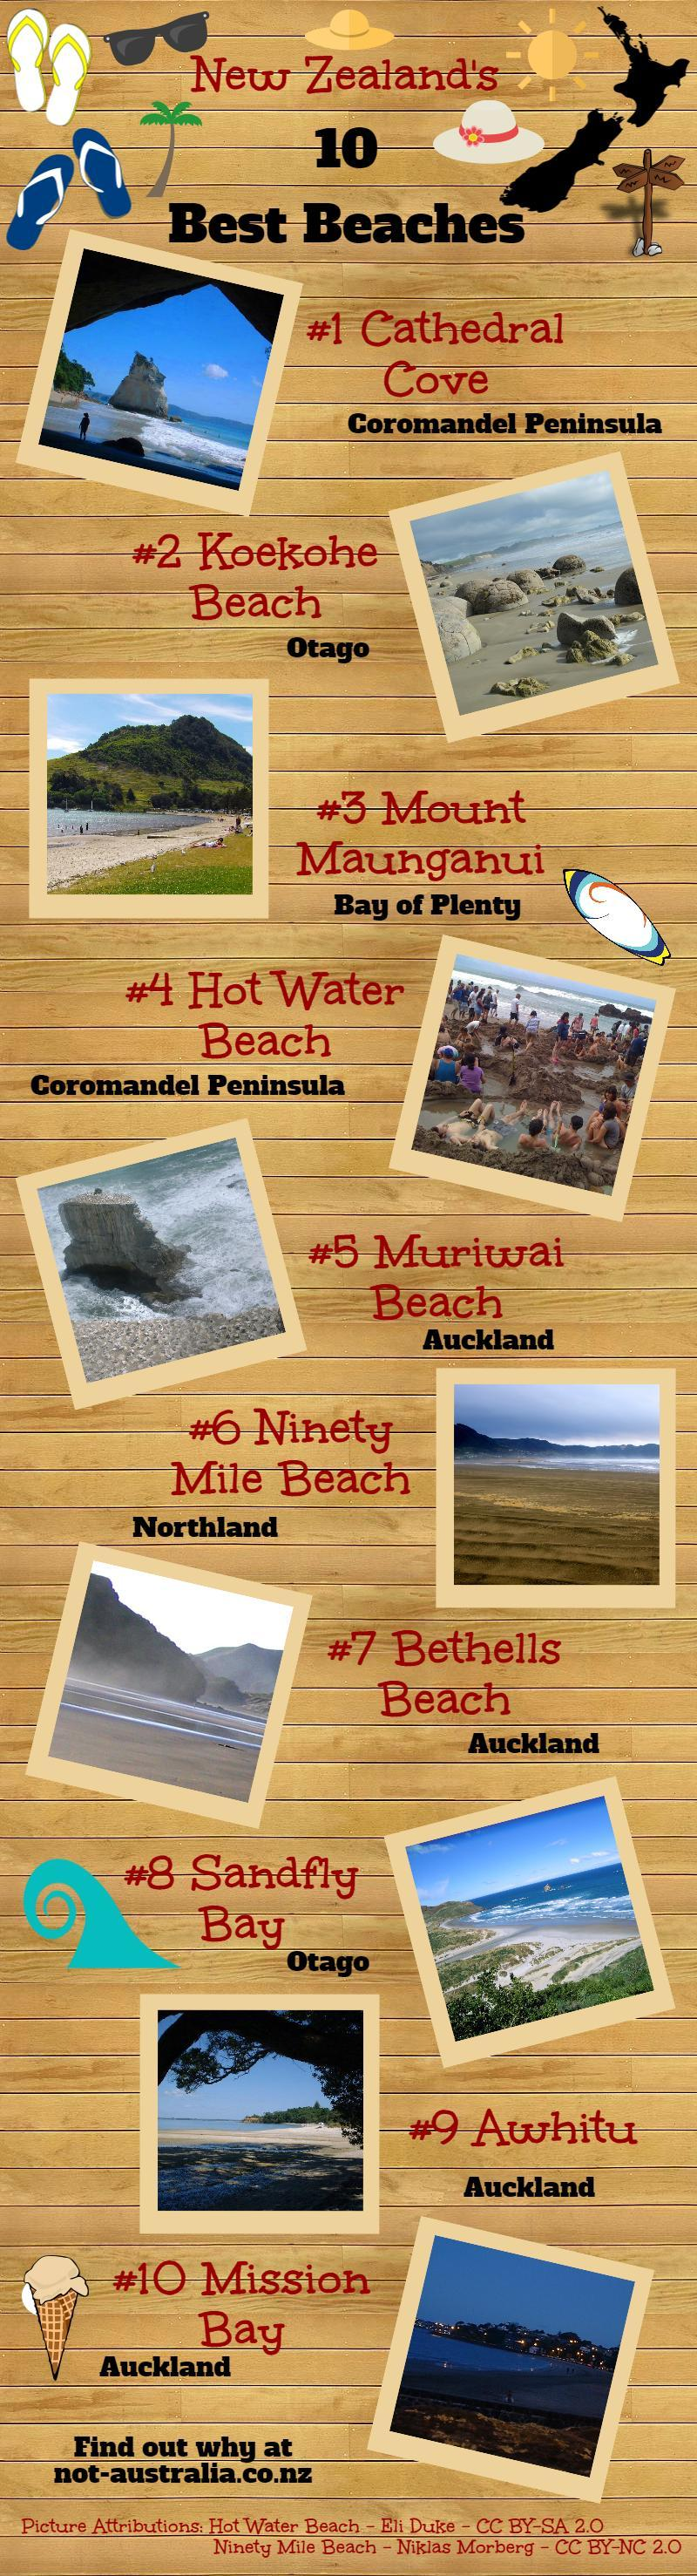 New Zealand's 10 Best Beaches Infographic